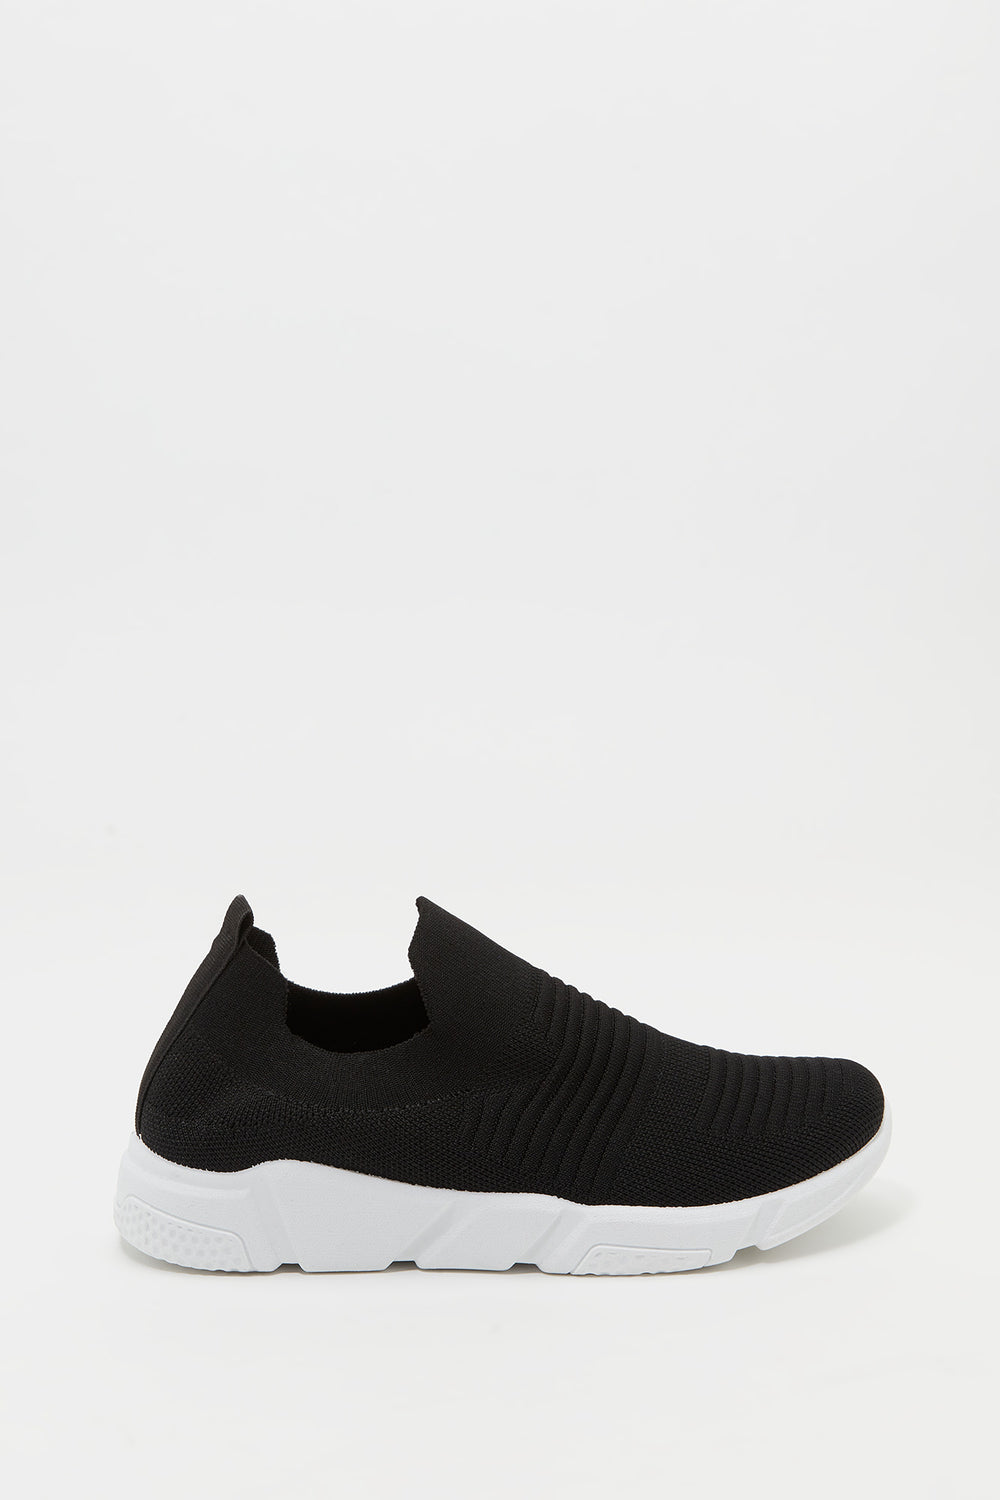 Laceless Knit Sneaker Black